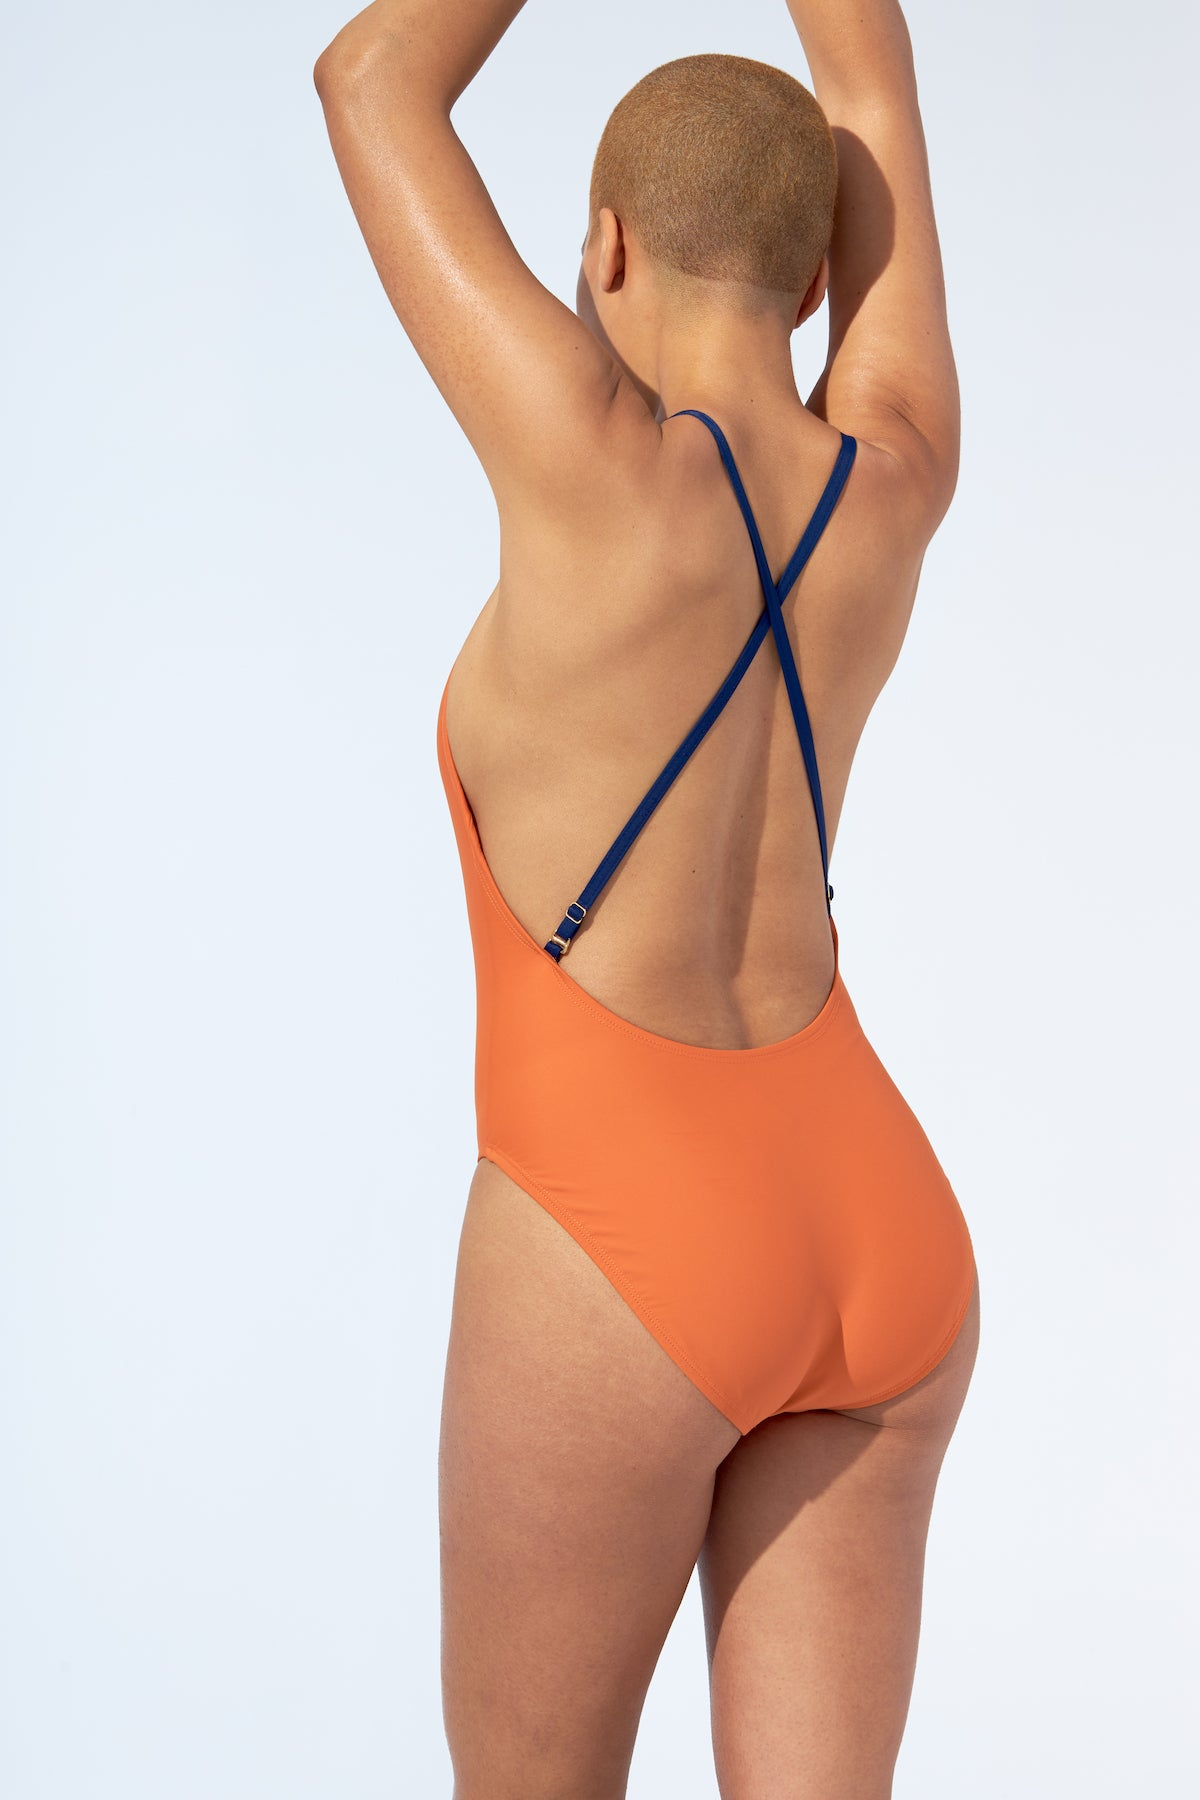 SASHA – One piece in orange